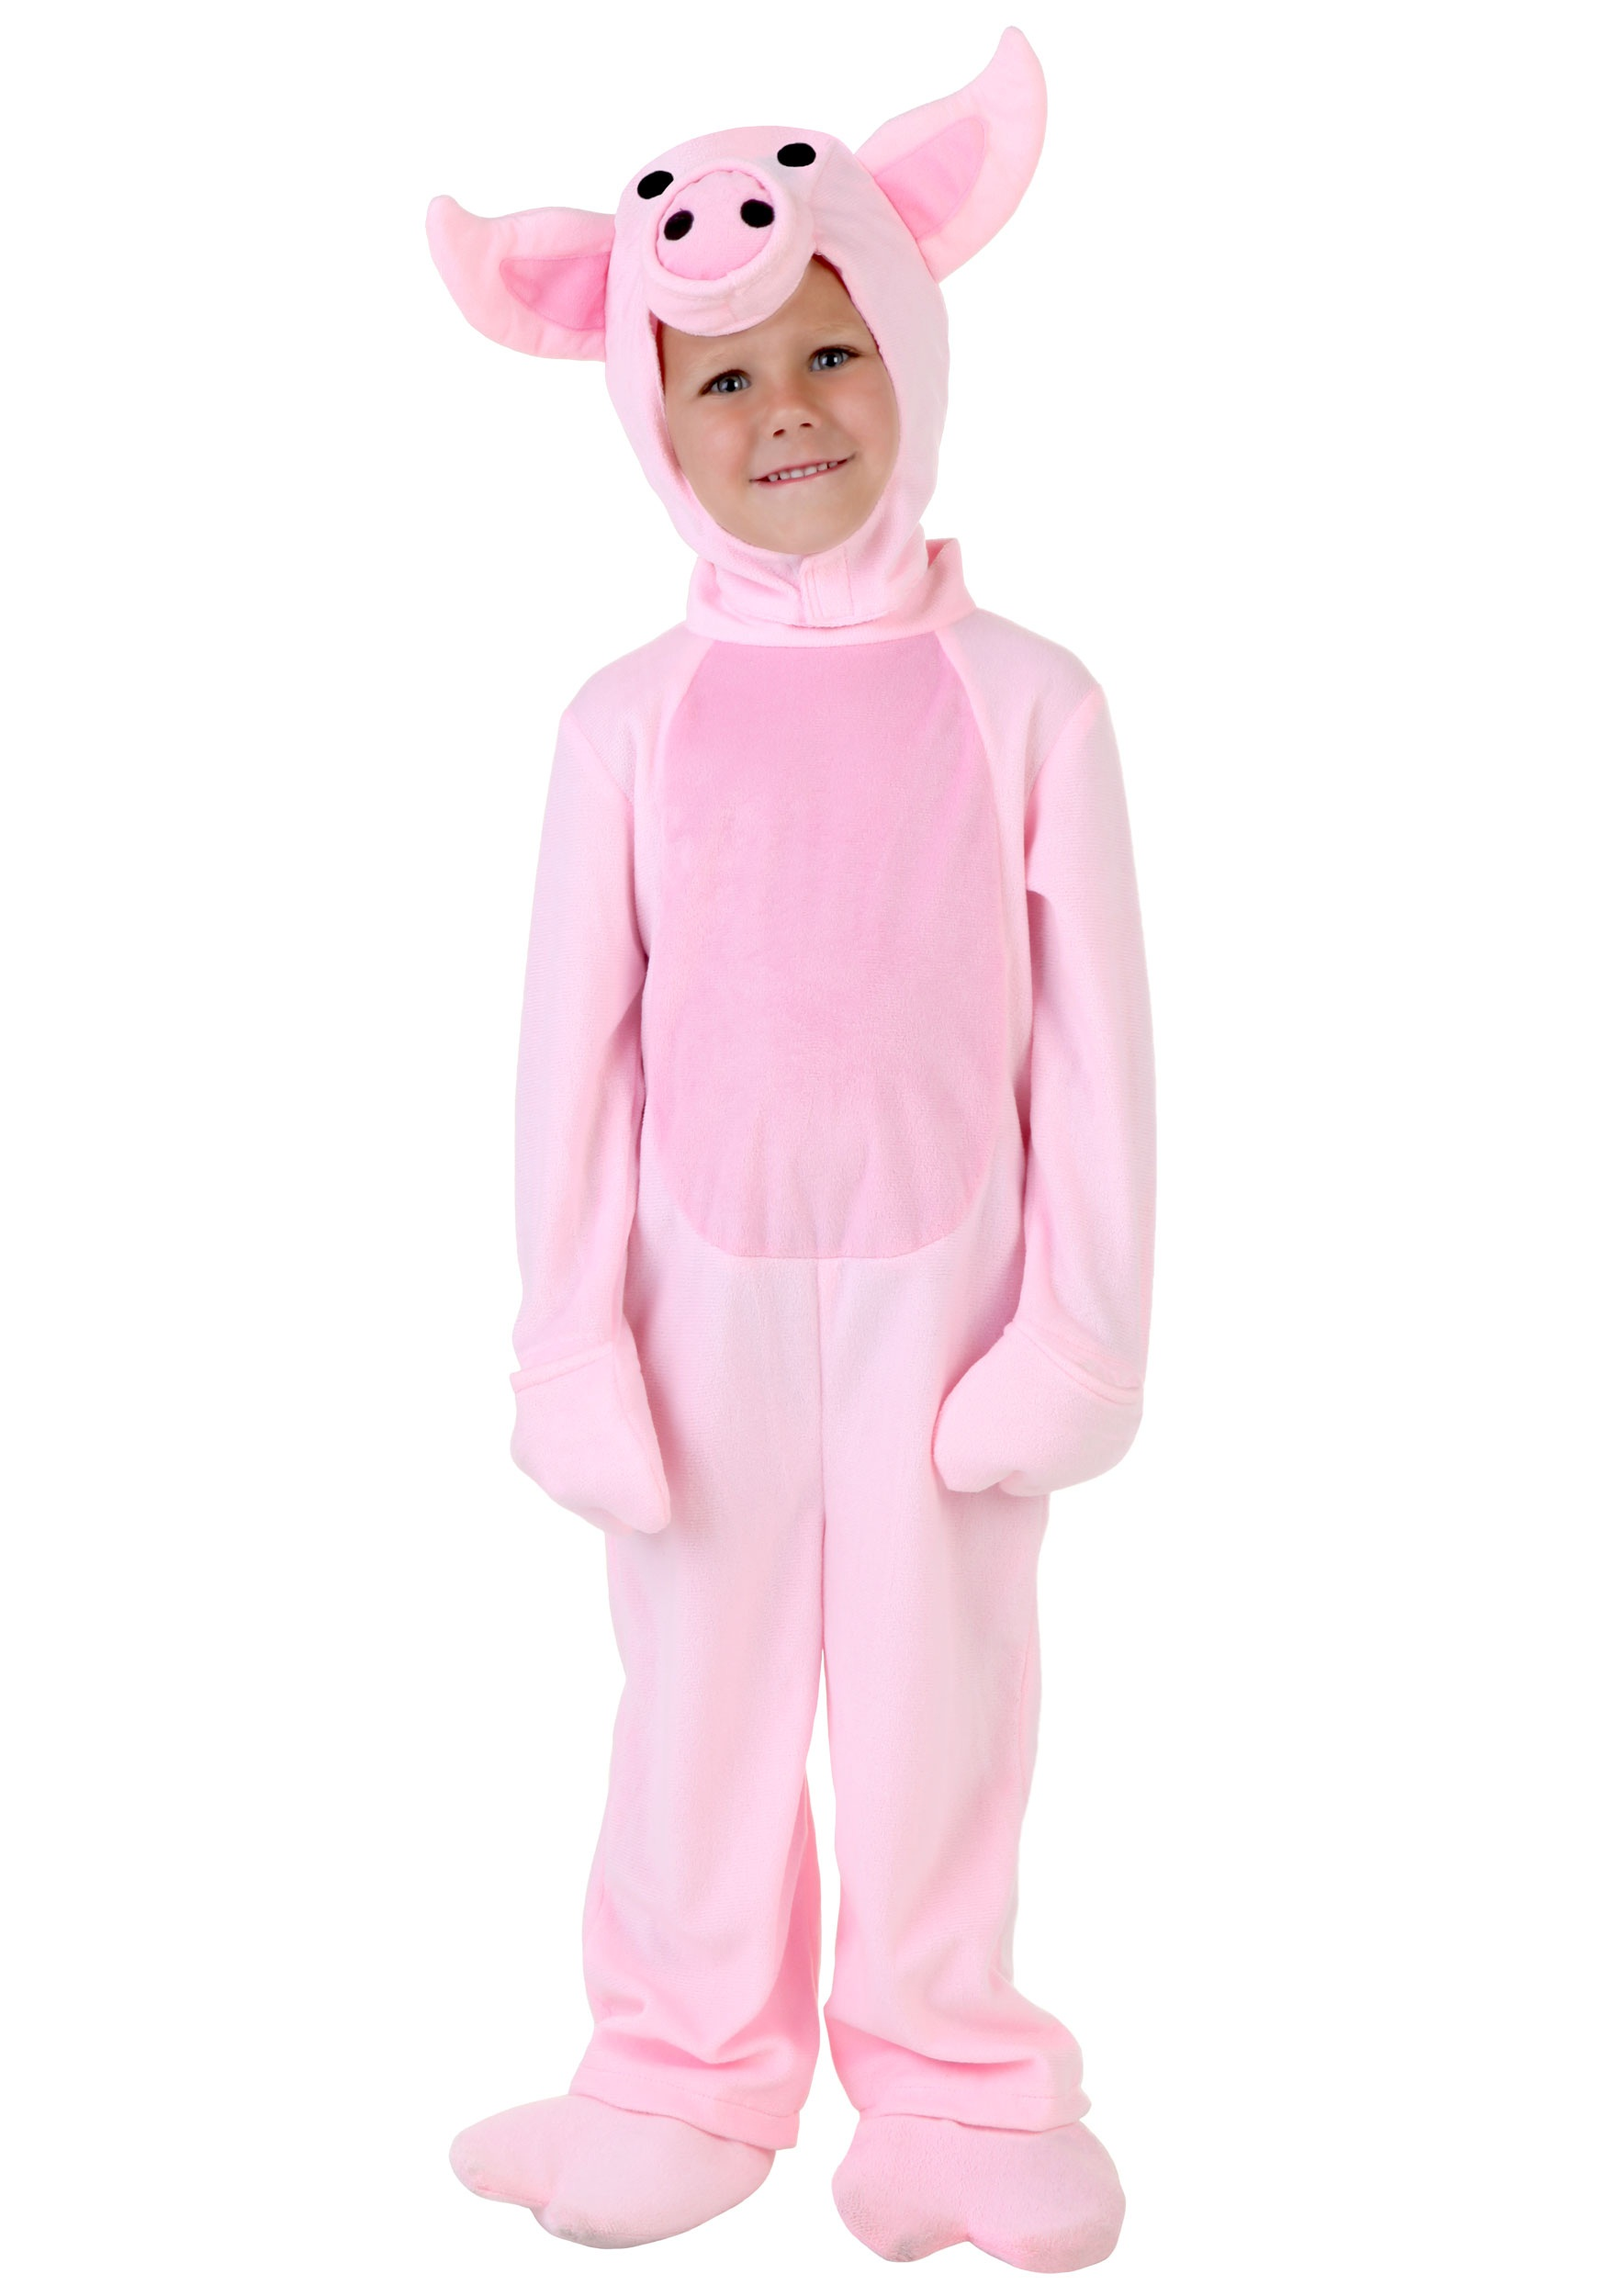 Small Child Pig Costume | Farm Animal Costume | Exclusive